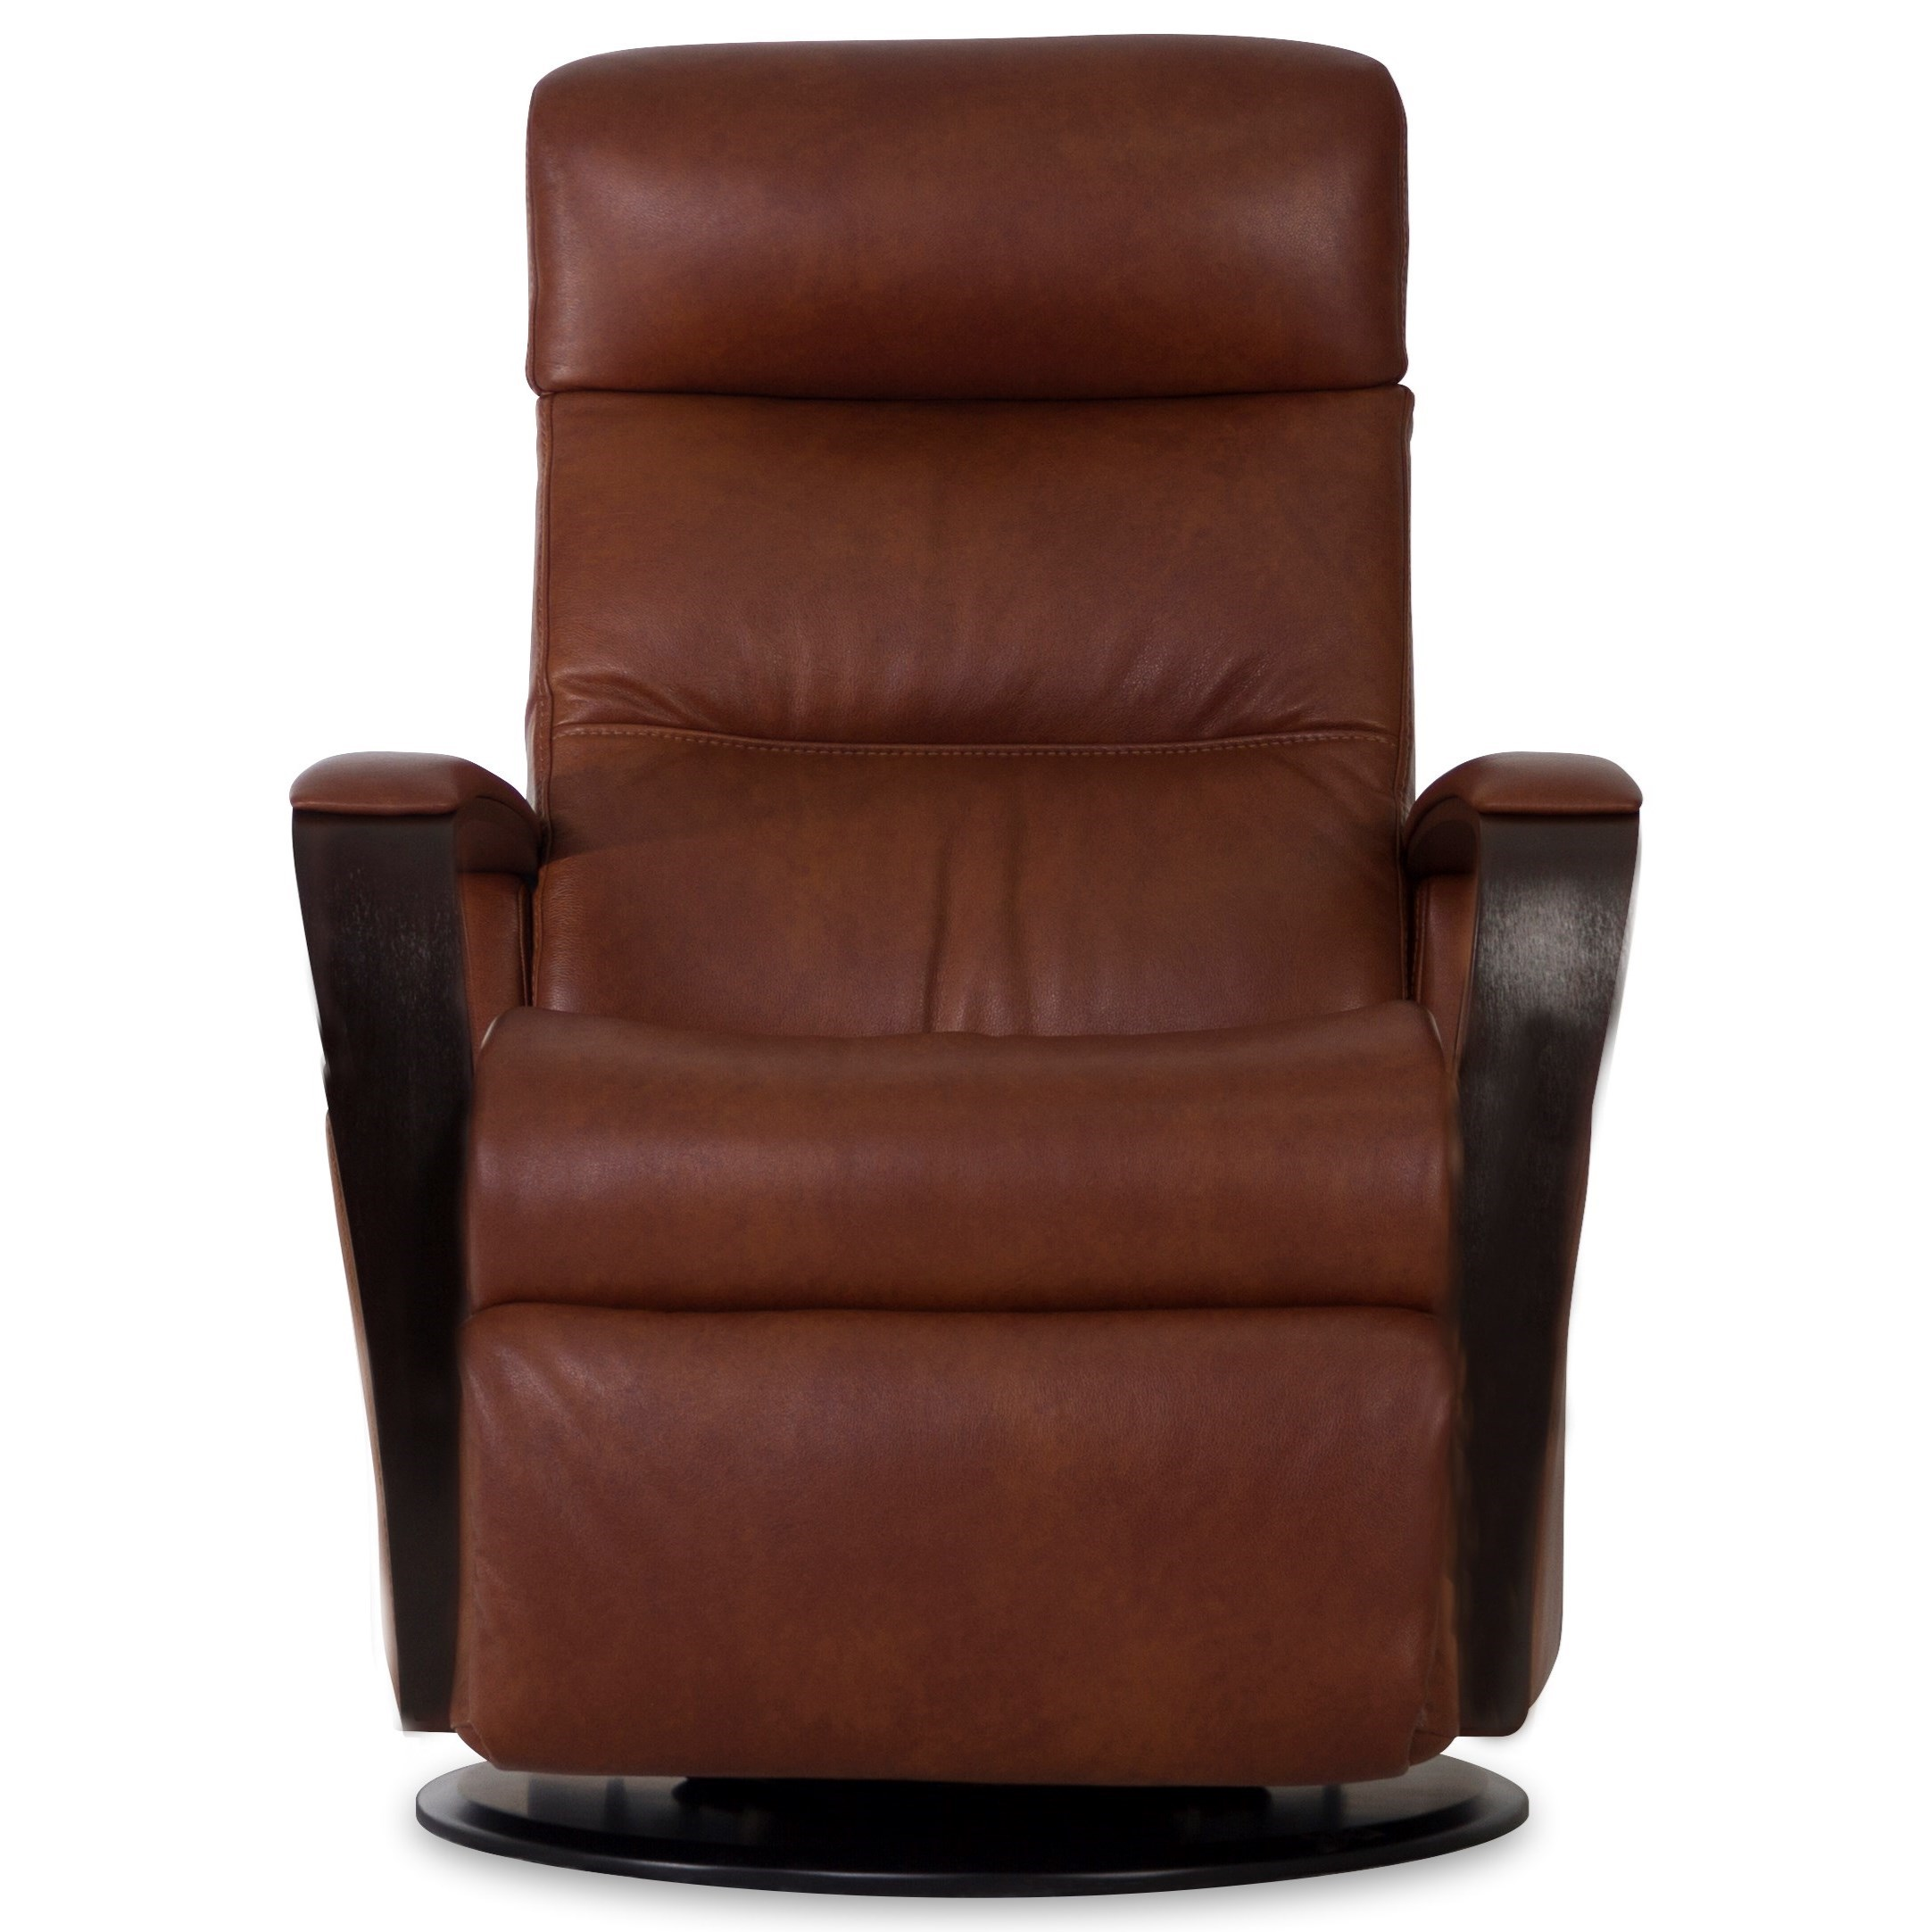 Vendor 508 Recliners Recliner Relaxer - Item Number: RG365 S550-911